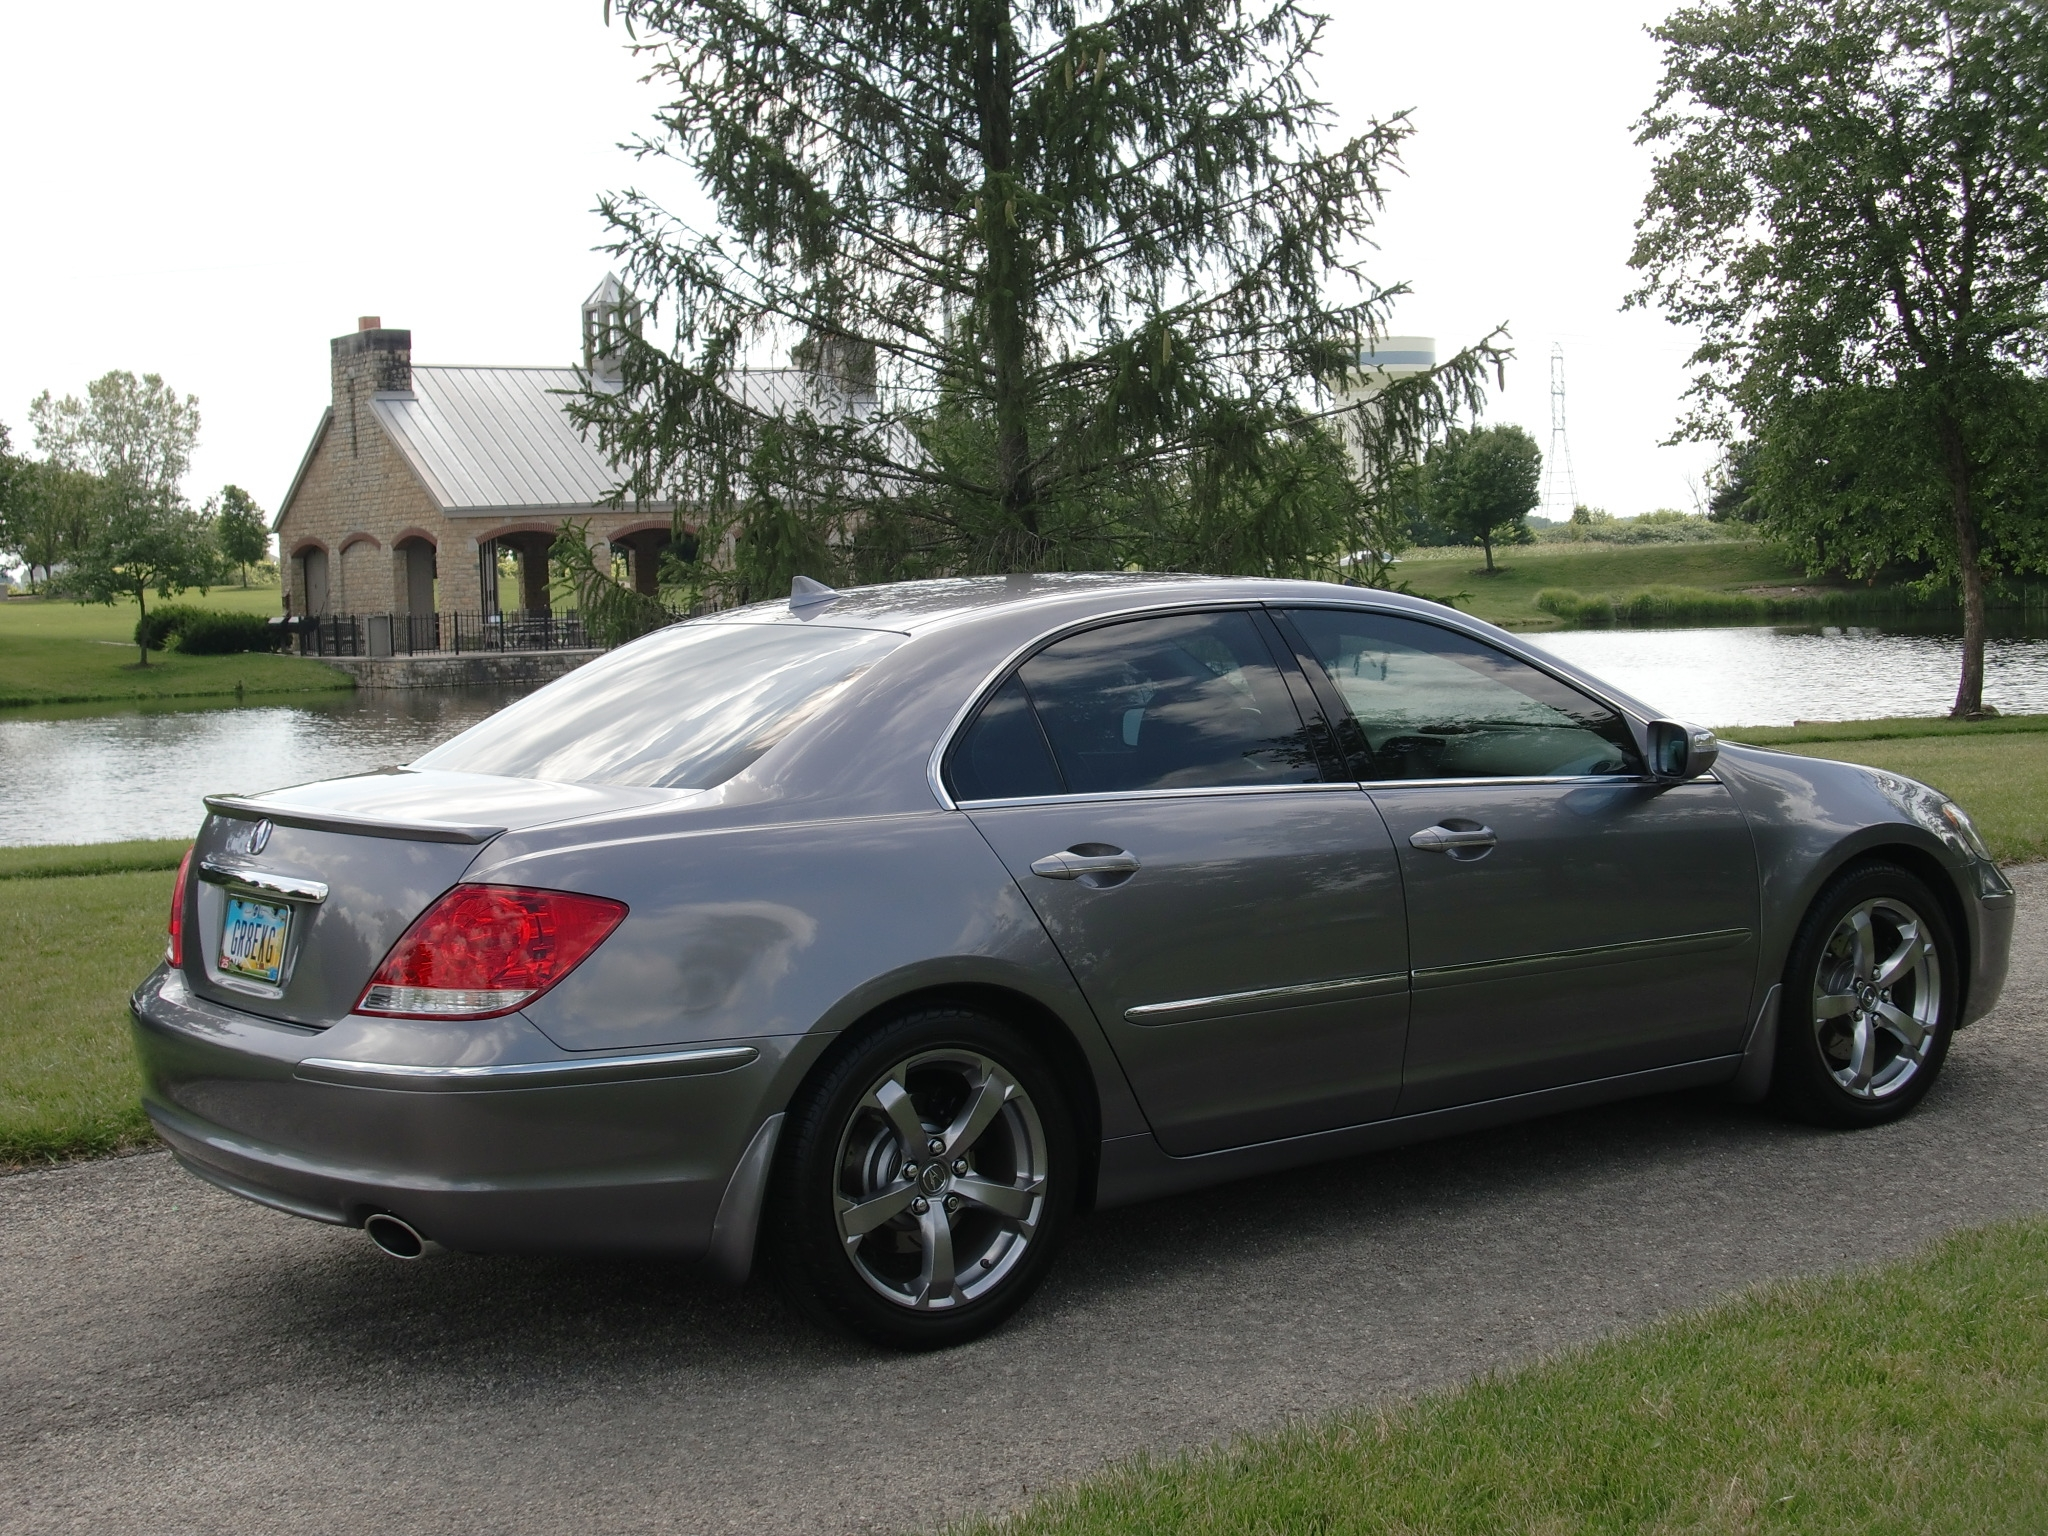 Maximumeffort 2006 Acura RL Specs, Photos, Modification